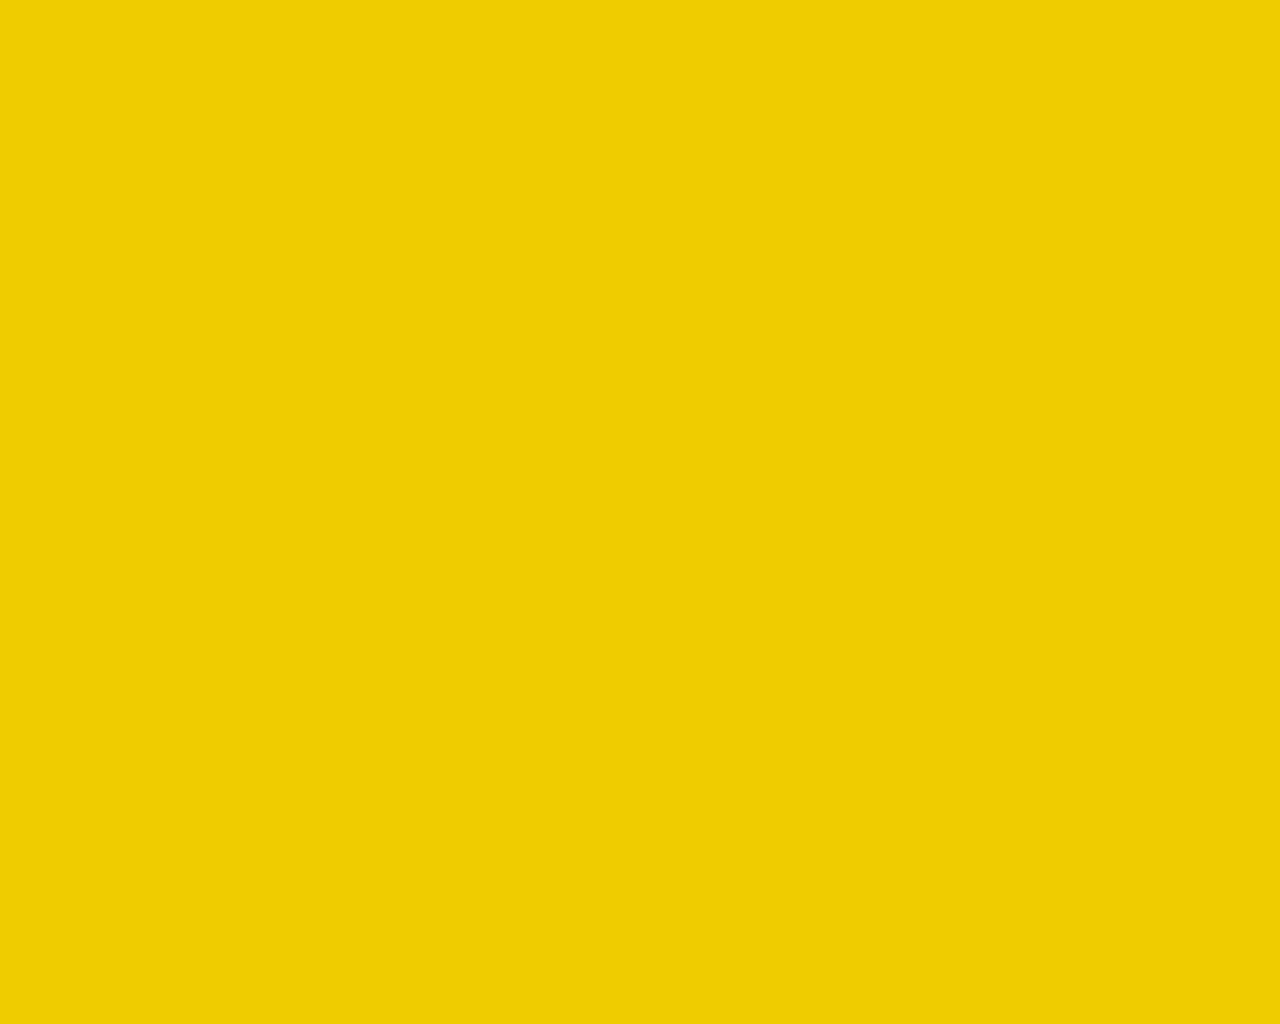 1280x1024 Yellow Munsell Solid Color Background